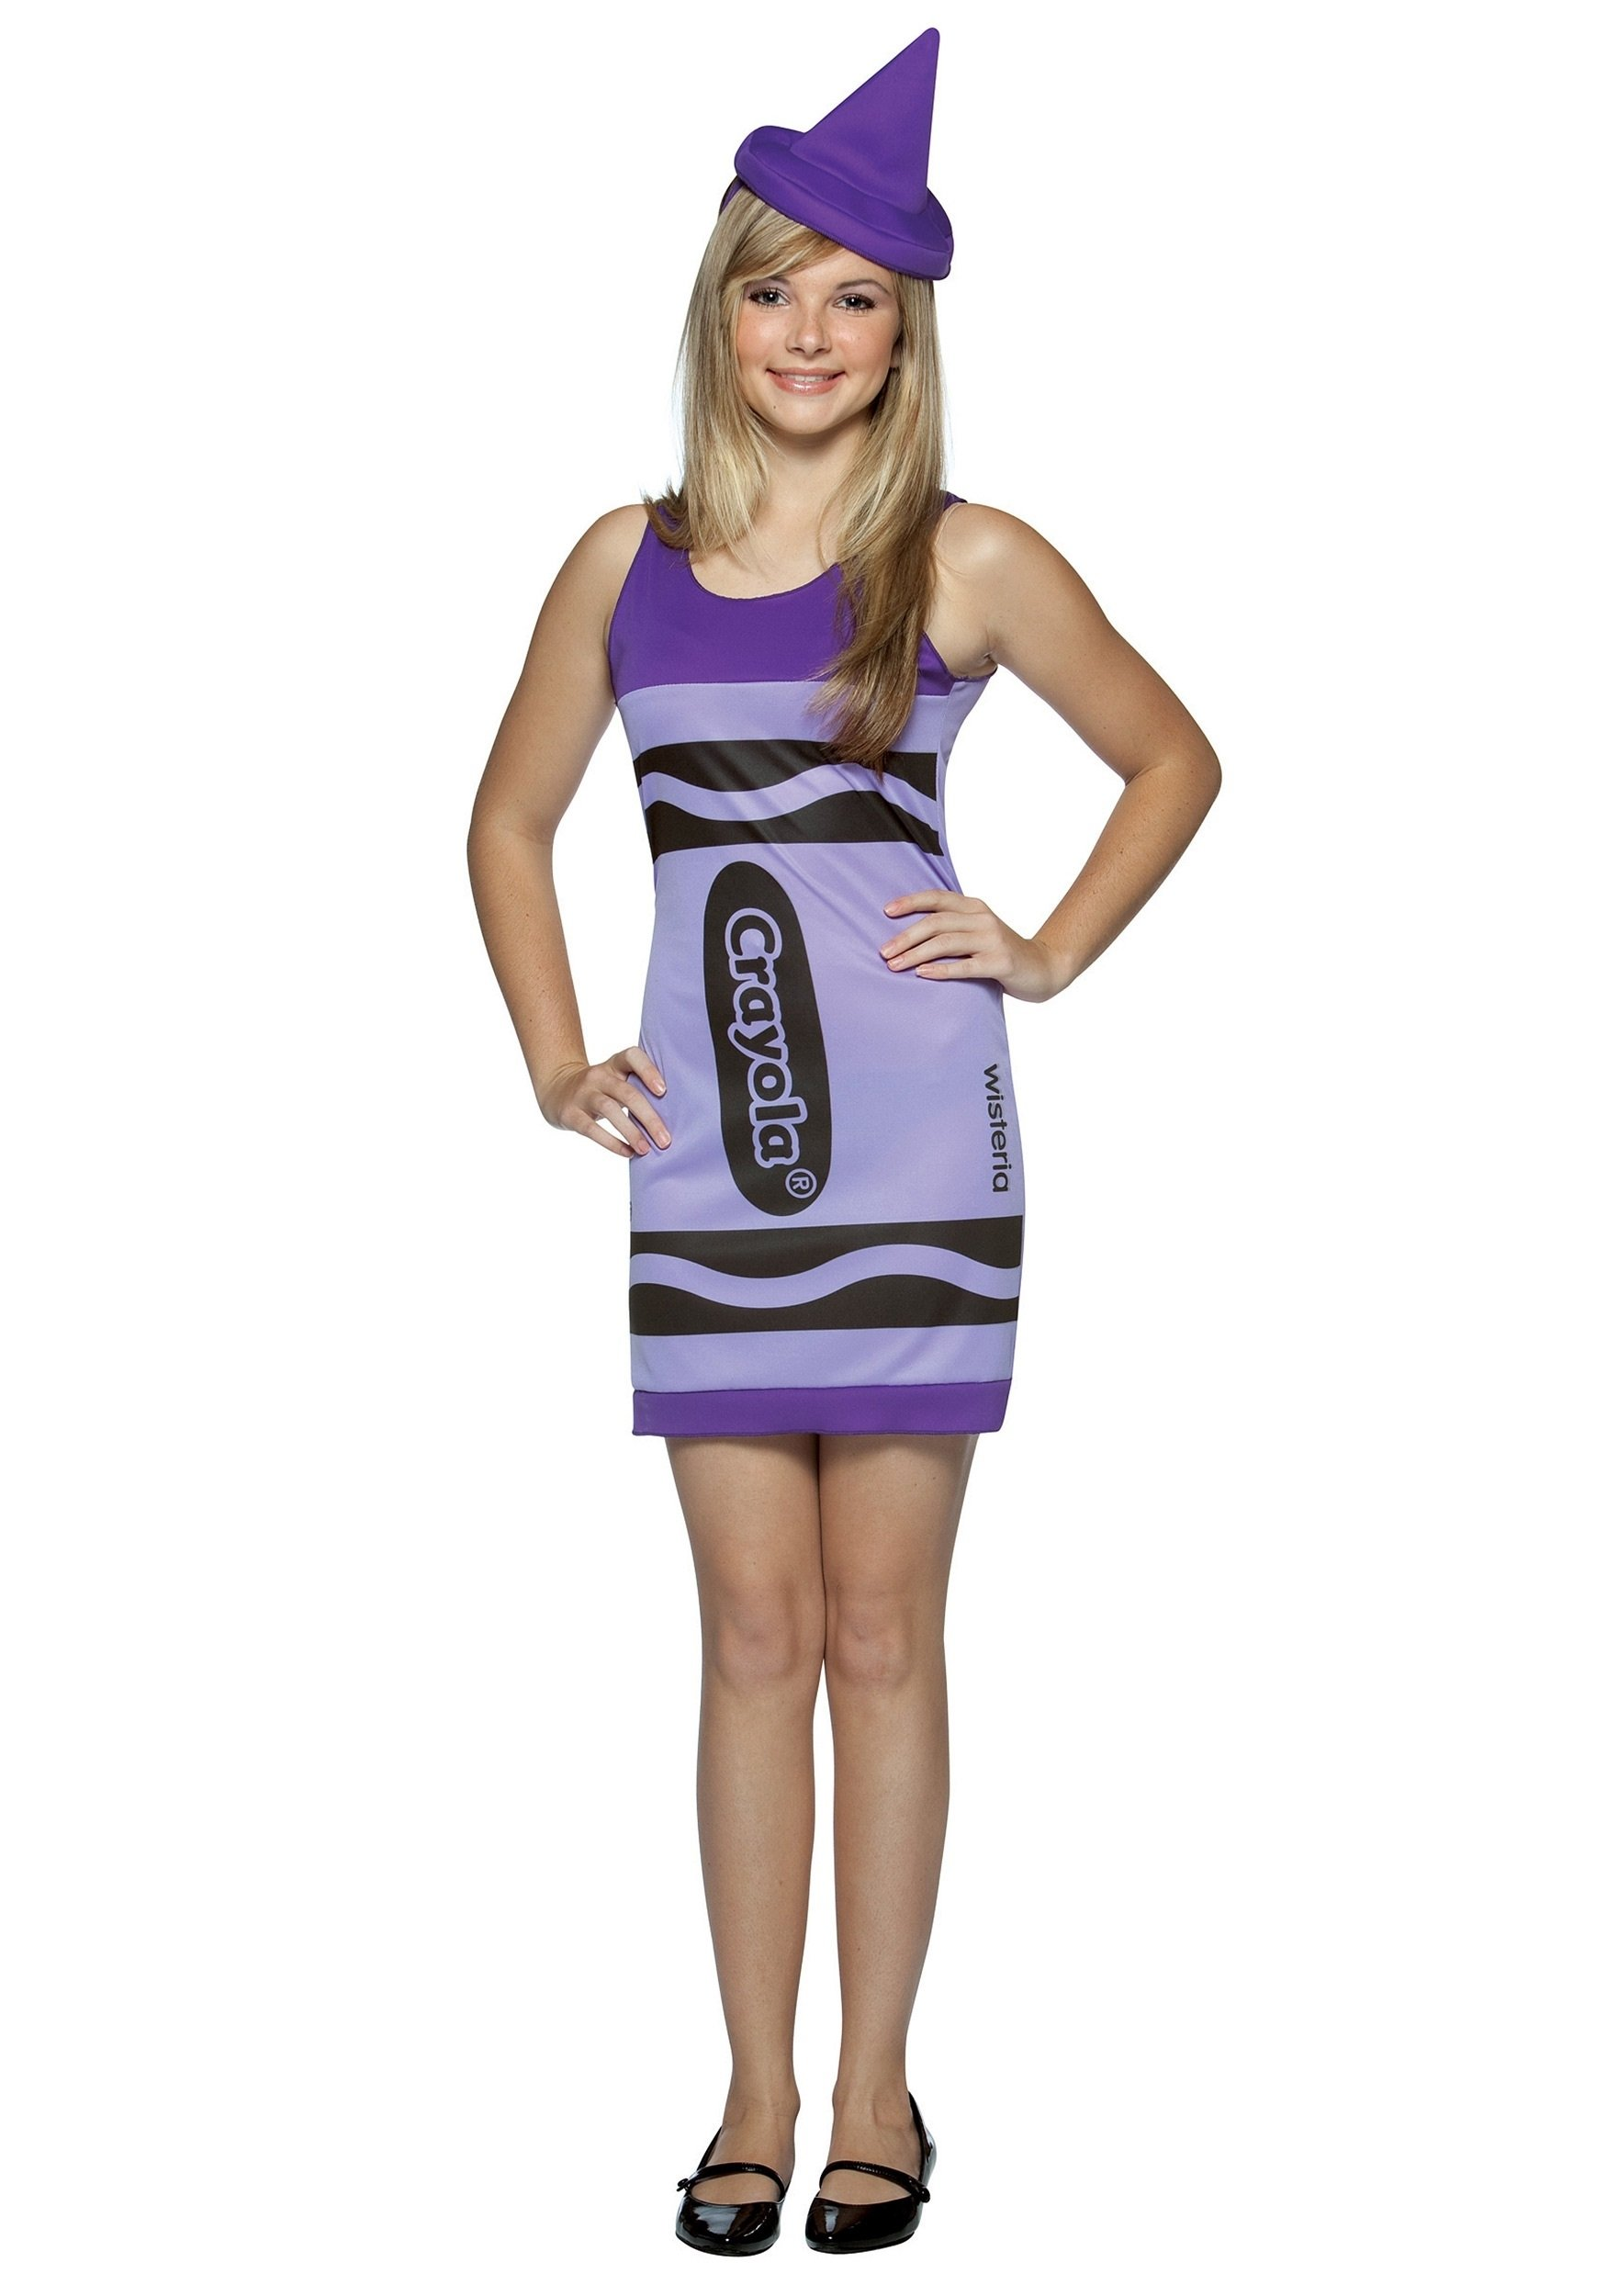 10 Fantastic Teenage Girls Halloween Costume Ideas wisteria teen crayon costume halloween costume ideas for teens 38 2020